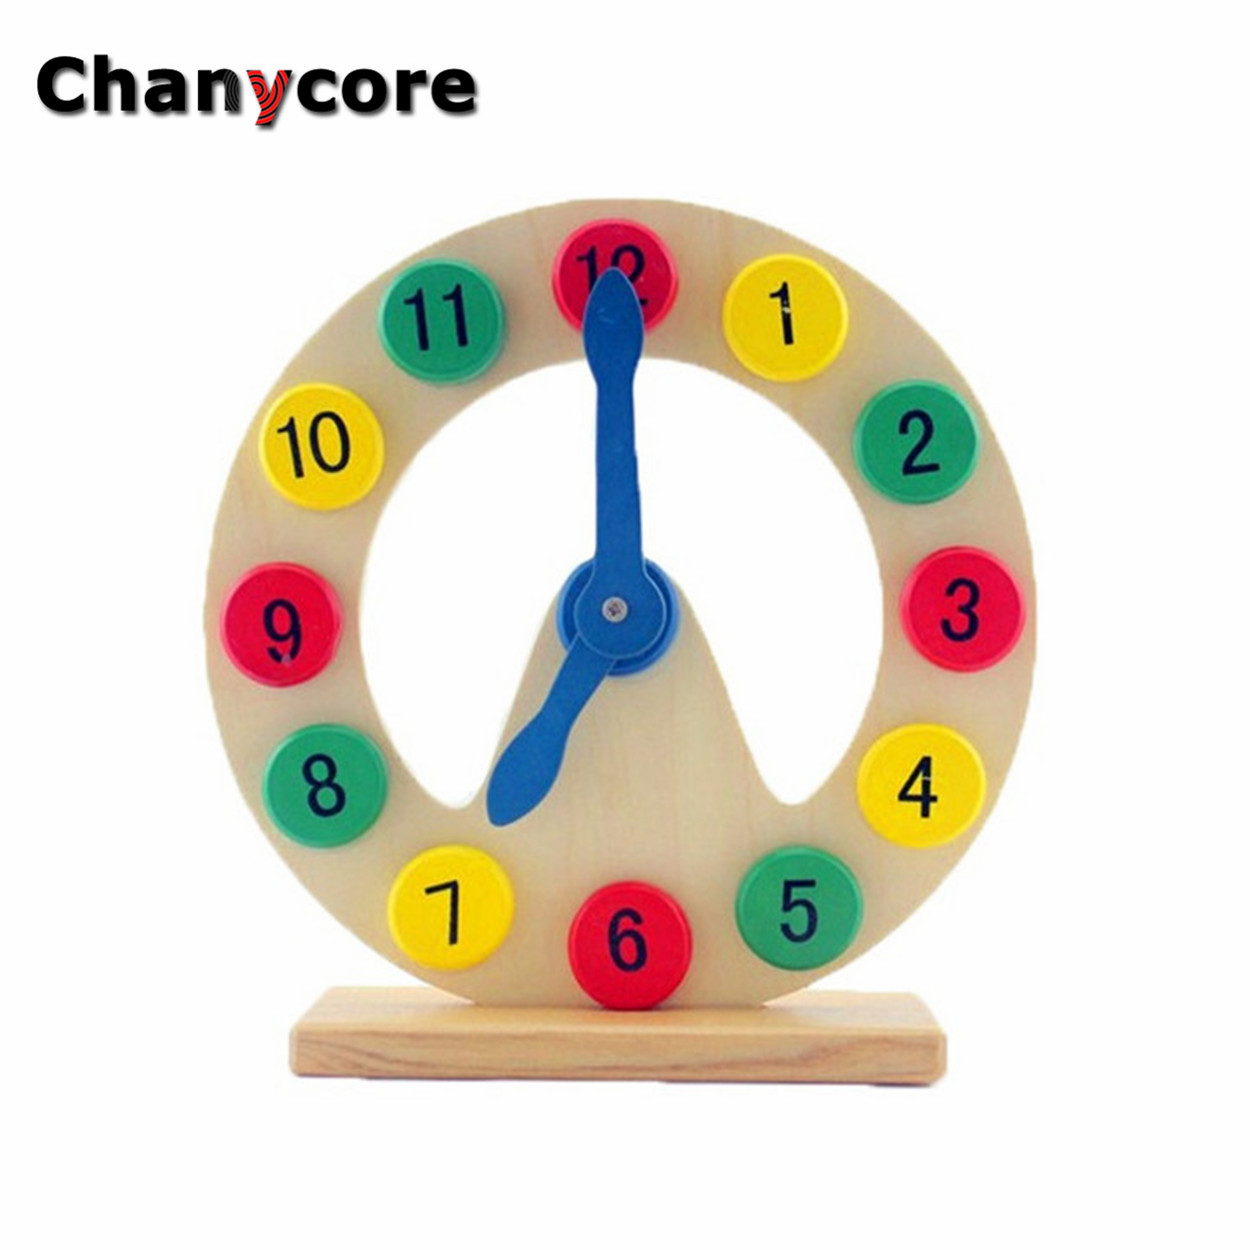 Worksheet Learning Clocks Online compare prices on kids learning clock online shoppingbuy low baby educational wooden time round children education enlightenment toys gifts model 4003